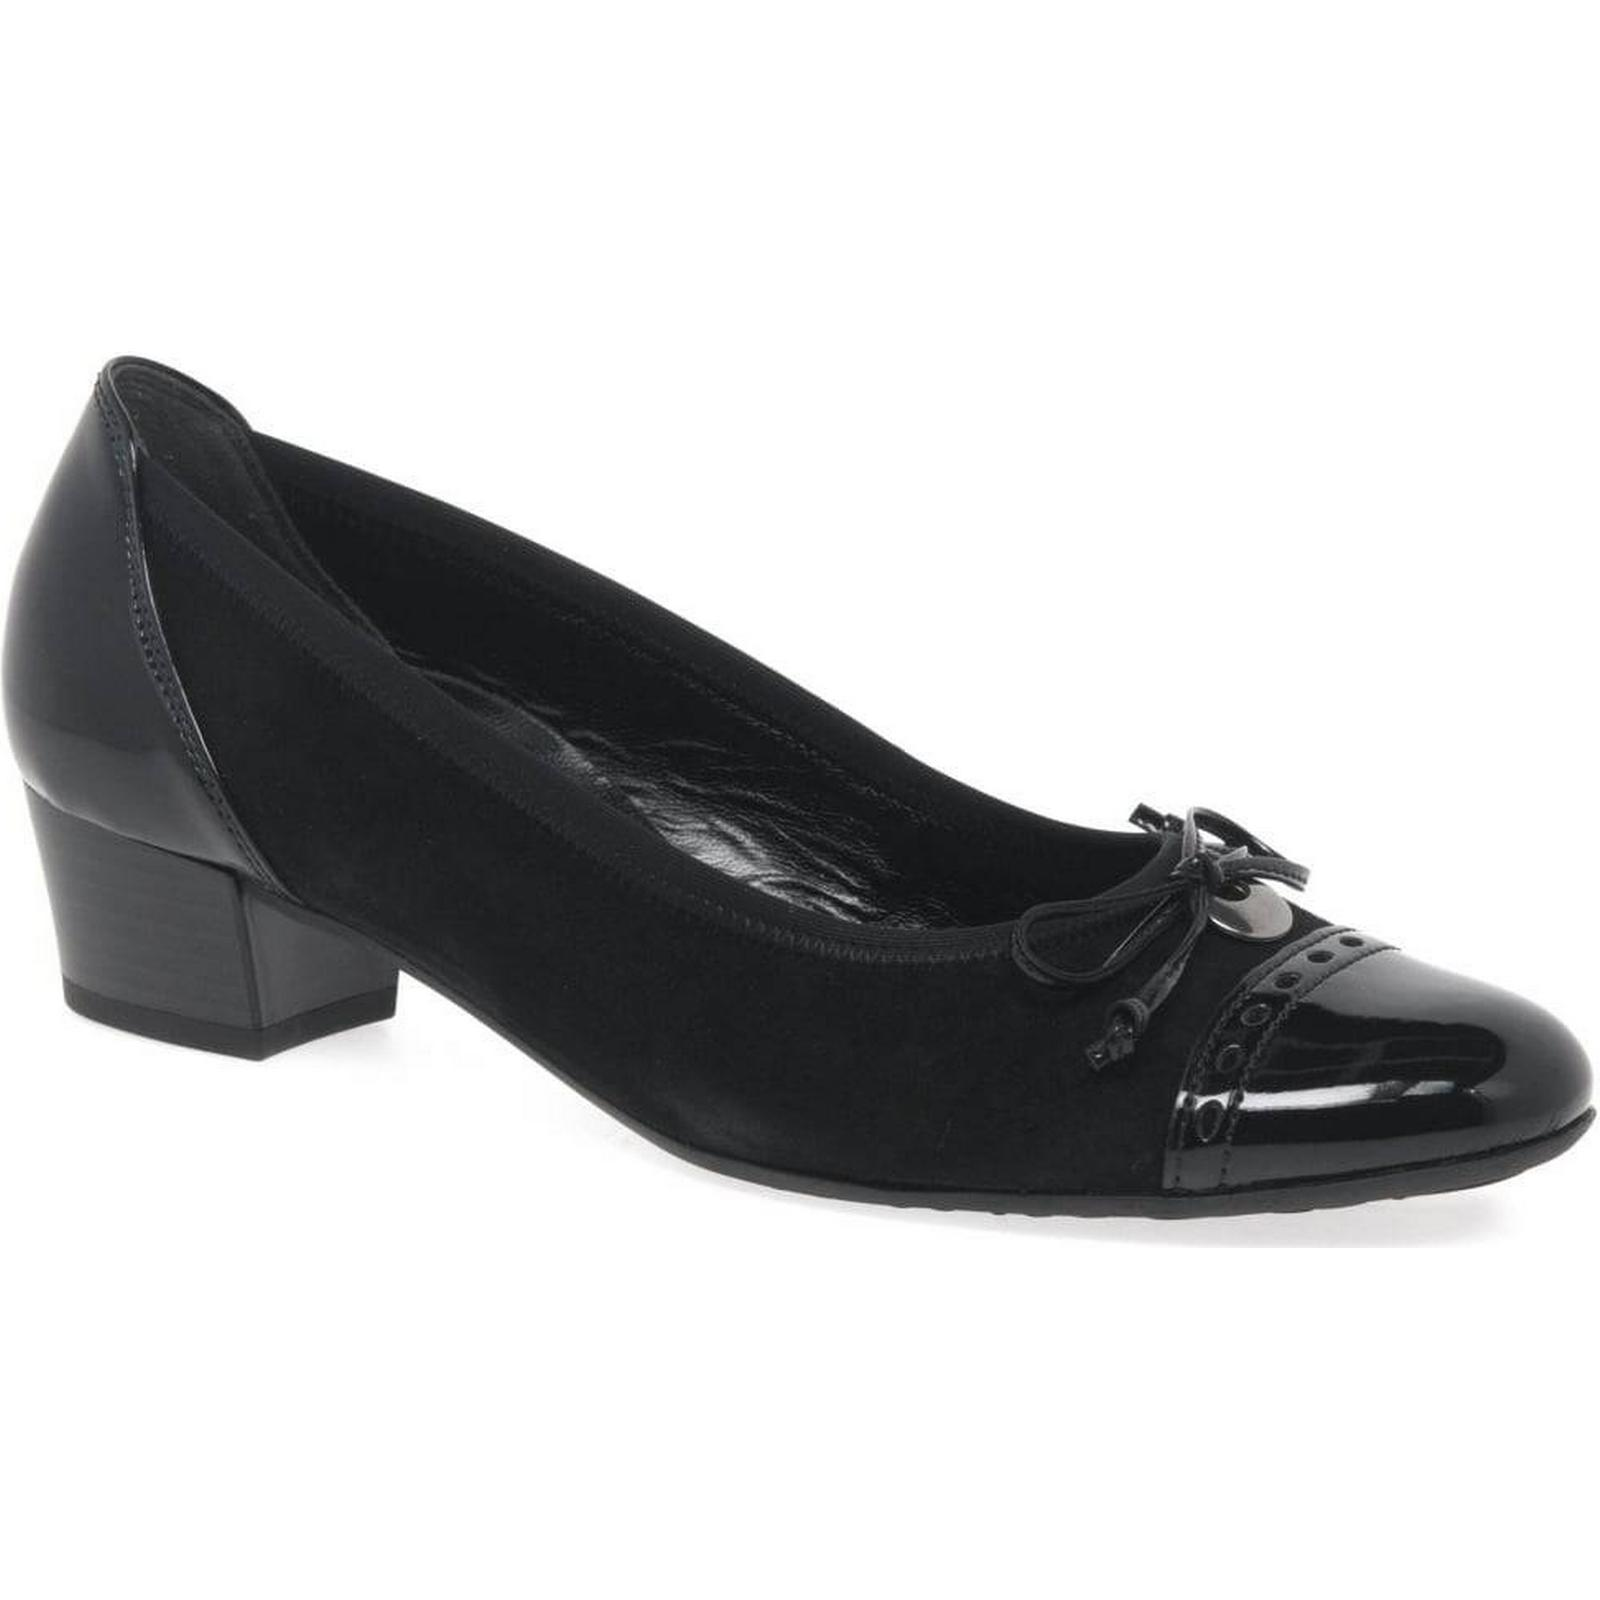 Gabor Islay Black Womens Casual Shoes Colour: Black Islay Suede/Patent, Size: 3.5 becc20